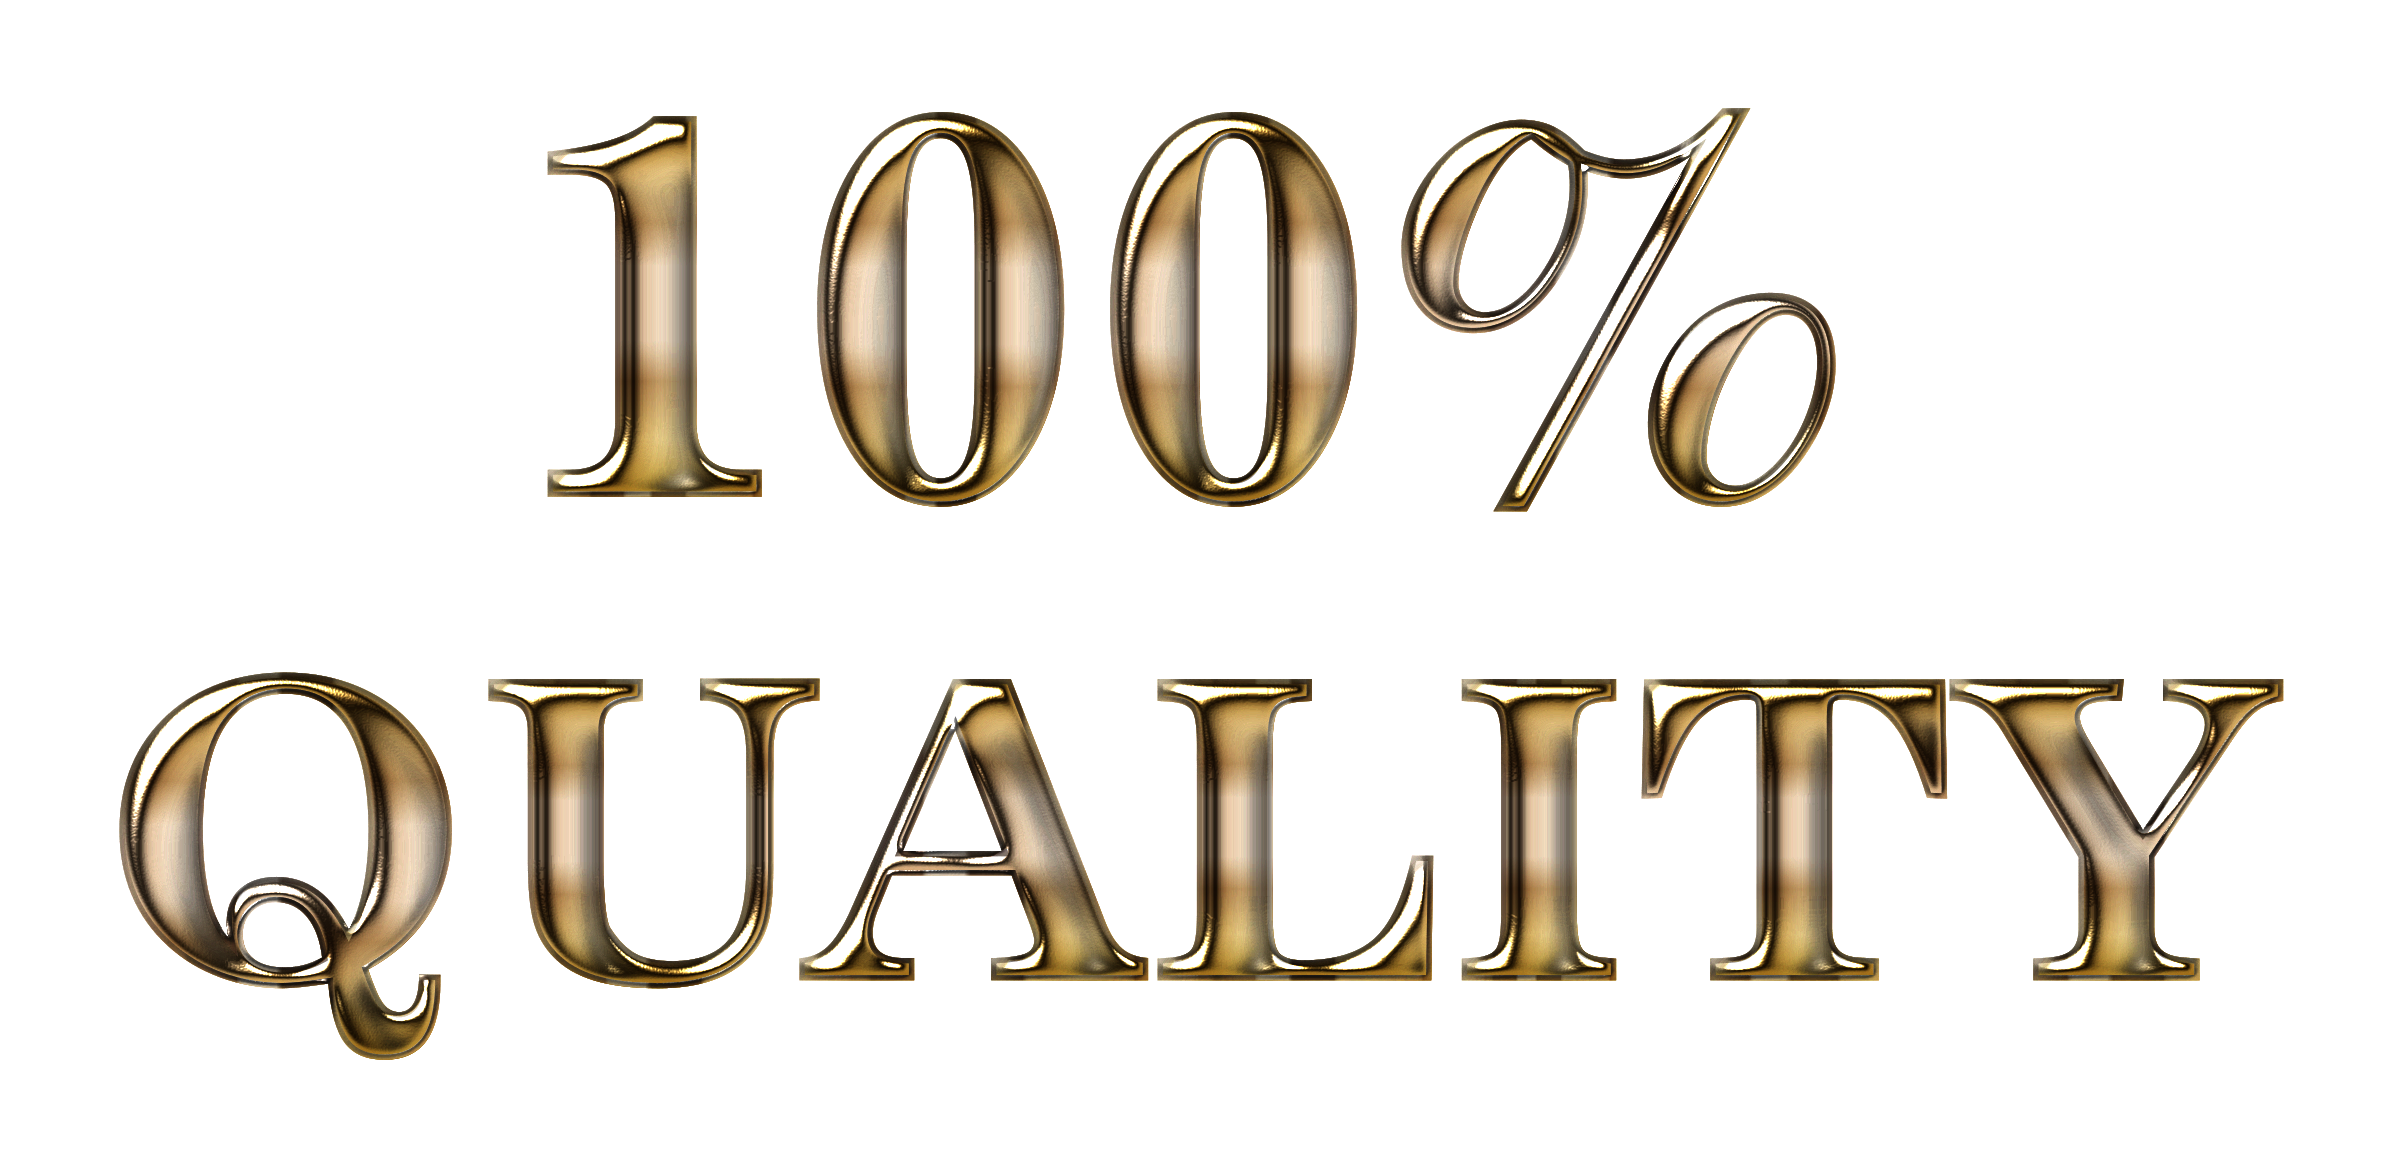 Poverty clipart destitute.  percent quality typography